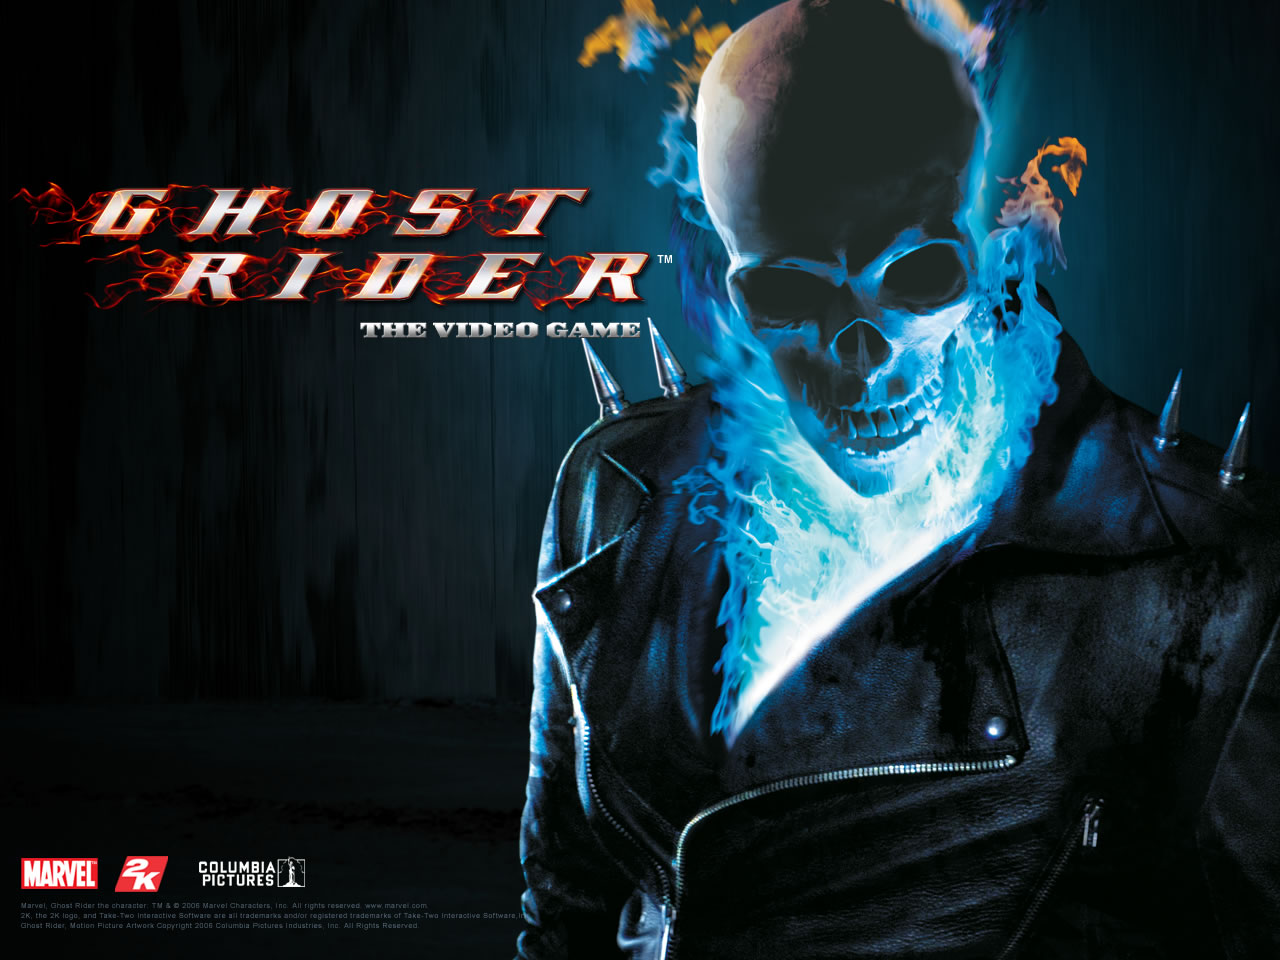 Car Wallpapers Hd 2013 Free Download Free Hd Wallpapers Ghost Rider Wallpapers Collection